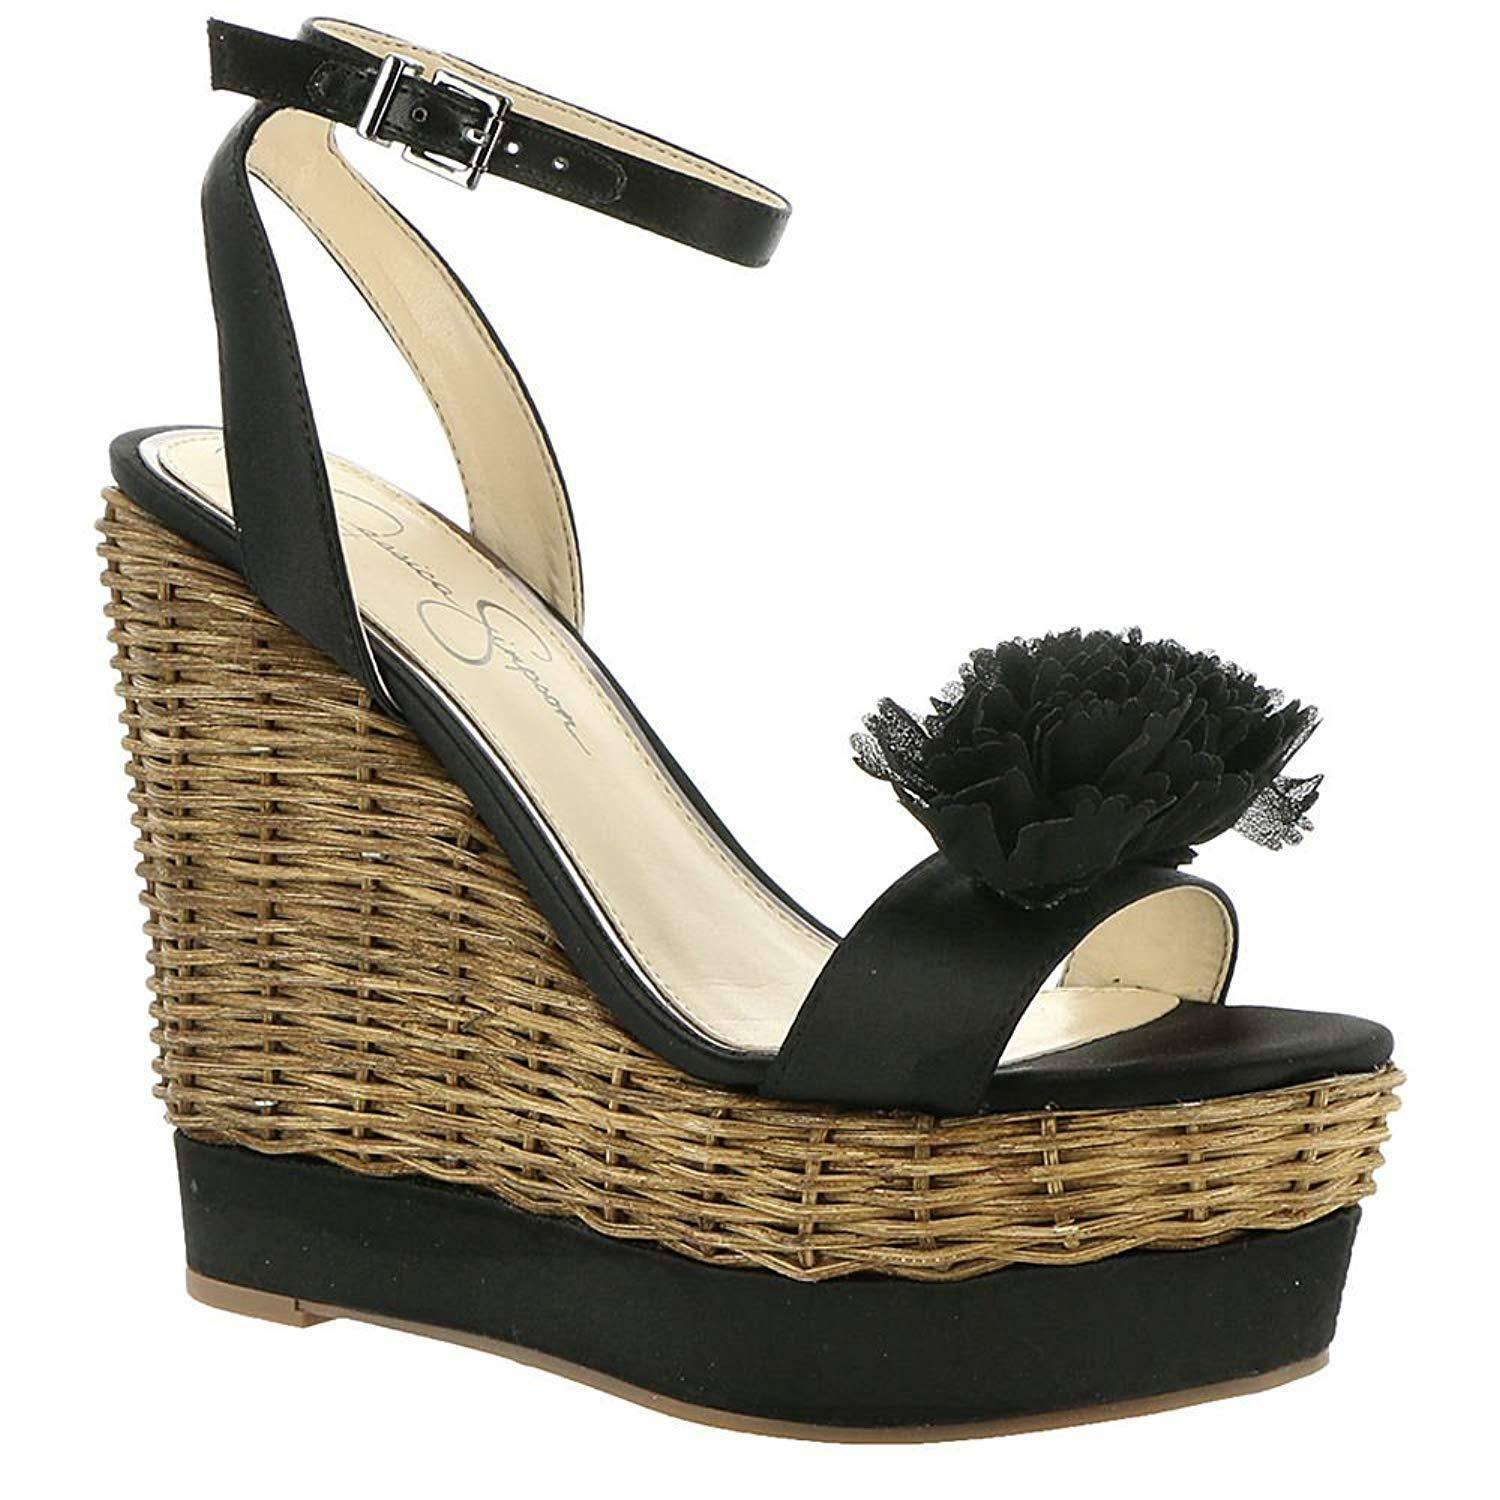 Jessica Simpson Pressa Chiffon Flower Wedge Detail Wedge Flower Sandals, Multi Sizes Black Cr fd119c